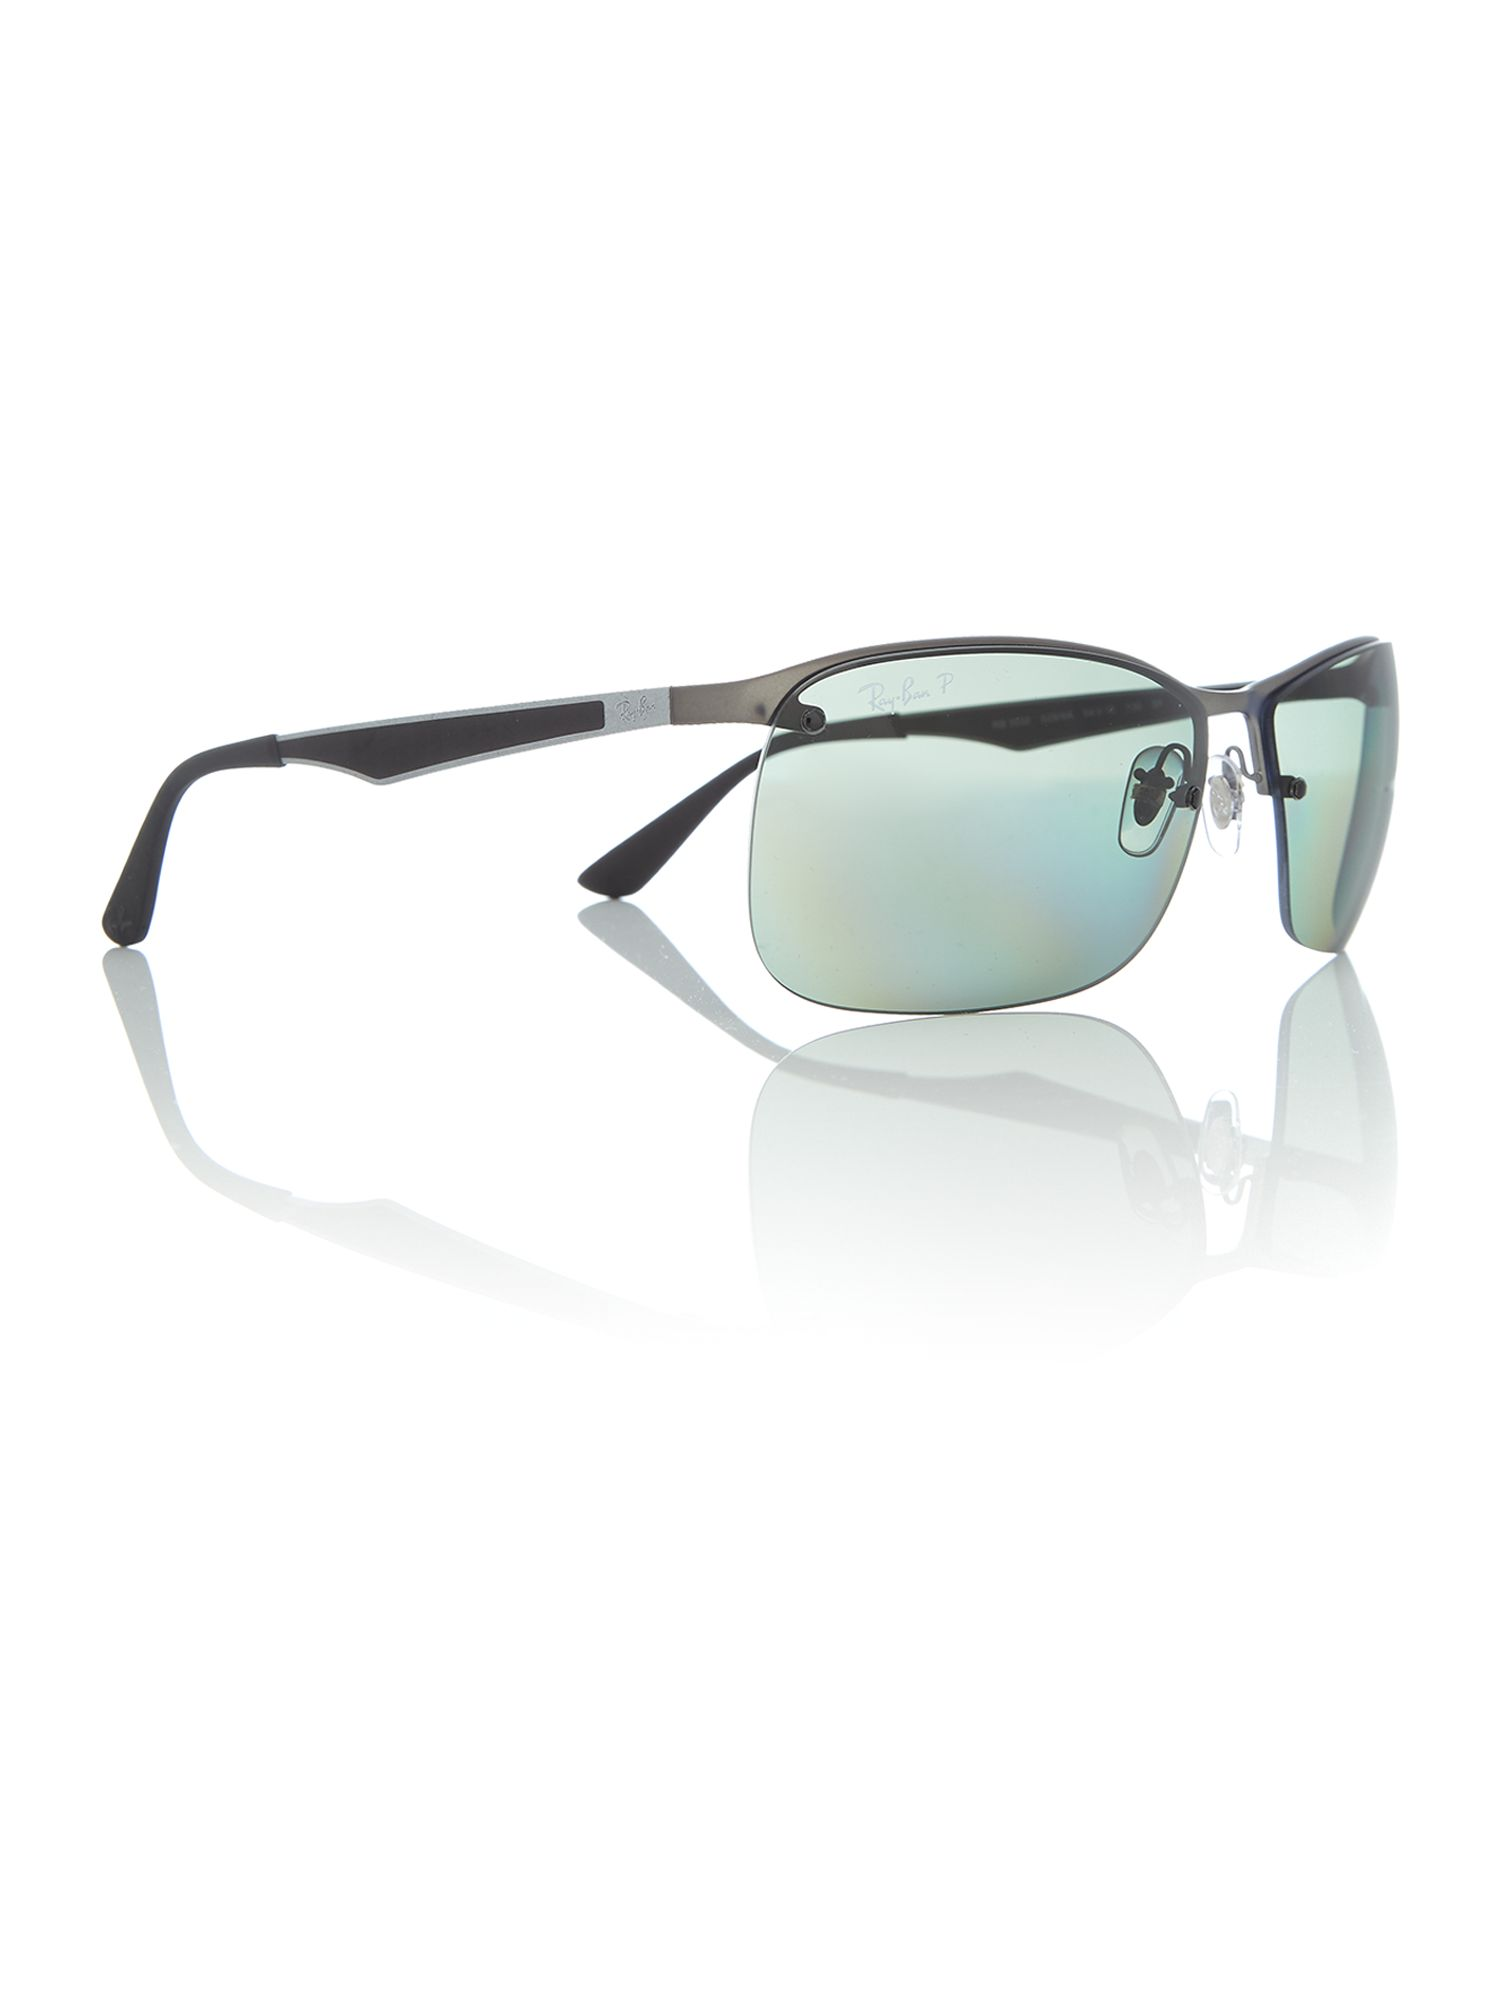 82518757d Ray-Ban Gunmetal square RB3550 sunglasses, Silver | Octer | £163.00